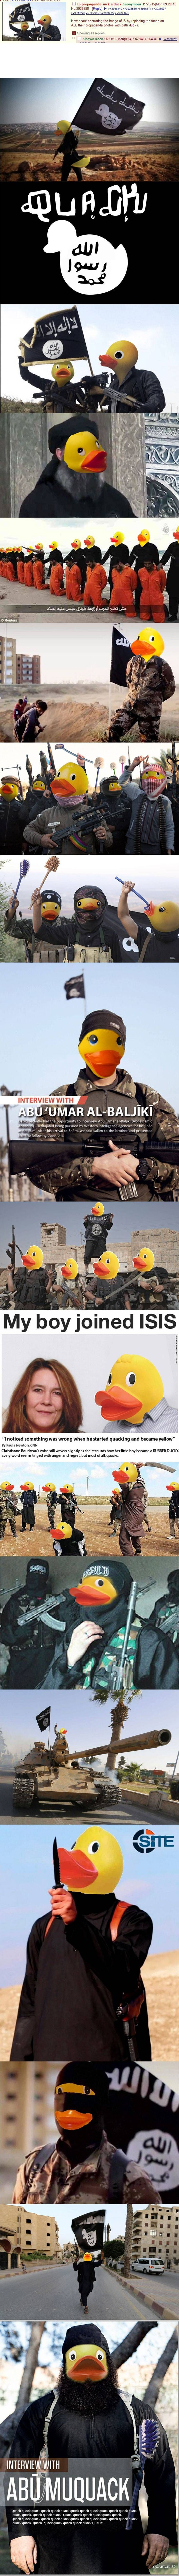 Internet site 4chan have been busy replacing the faces on ISIS propaganda photographs with bath ducks. Allahu-quackbar!